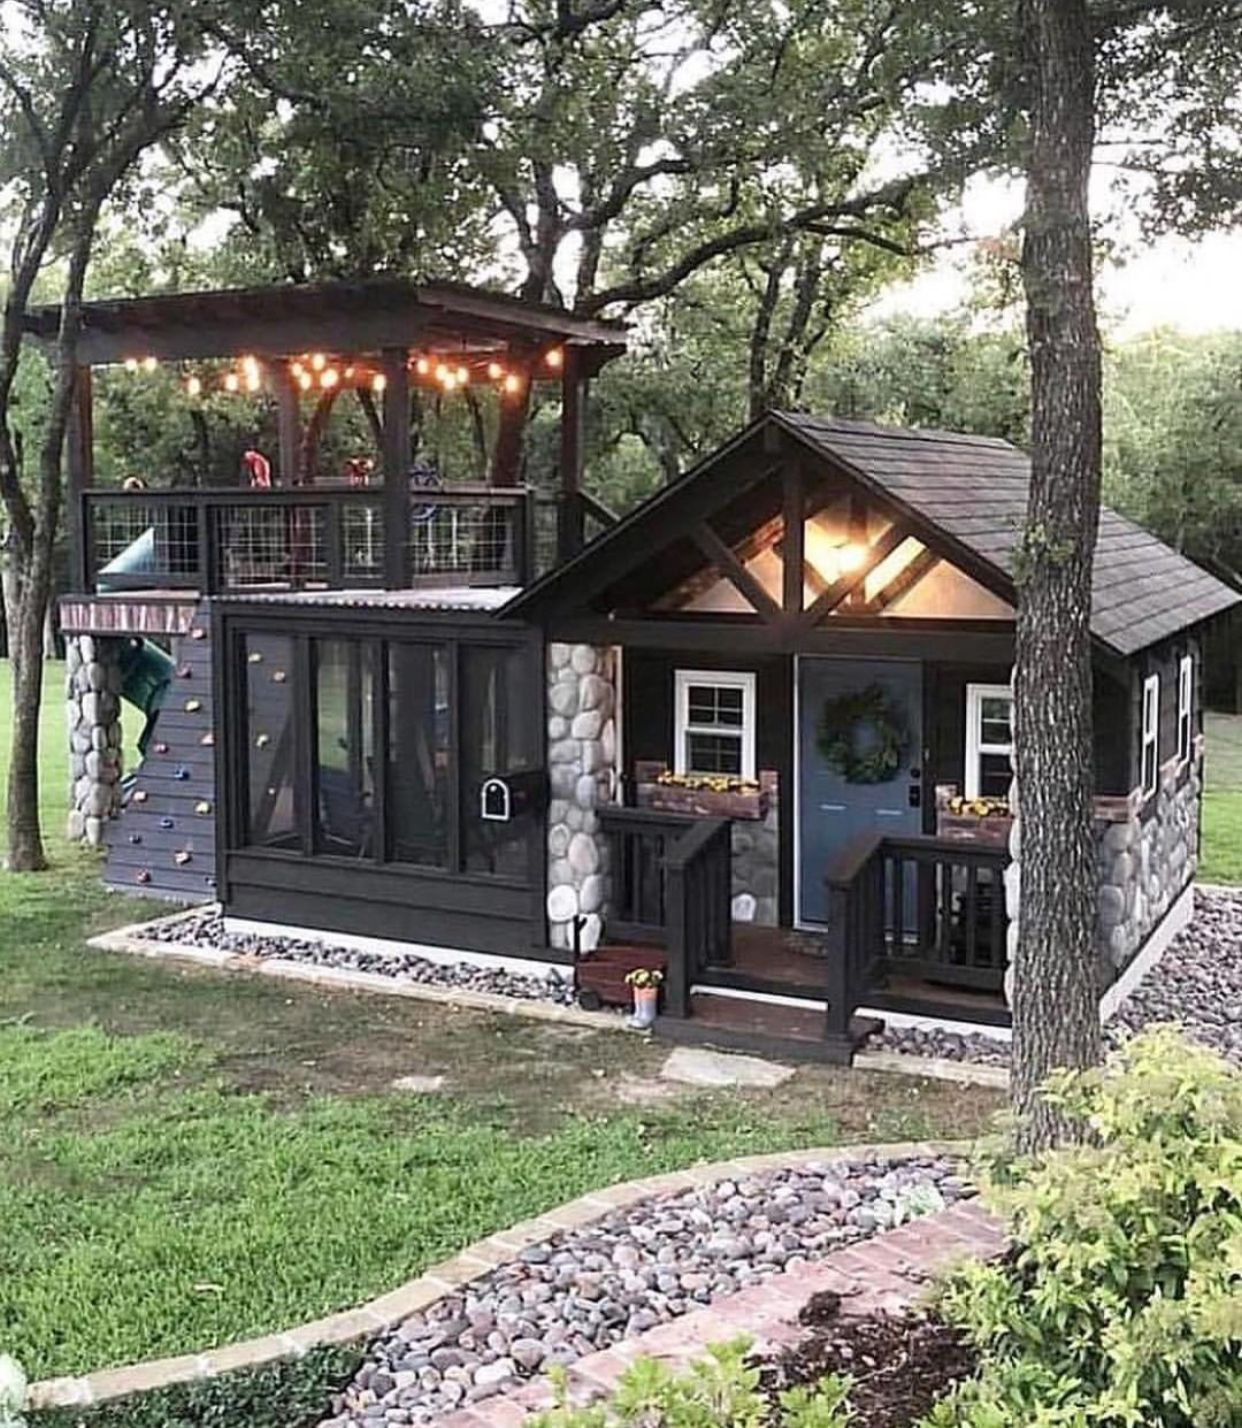 😍😍😍 can you imagine having this tiny home and/or play house for